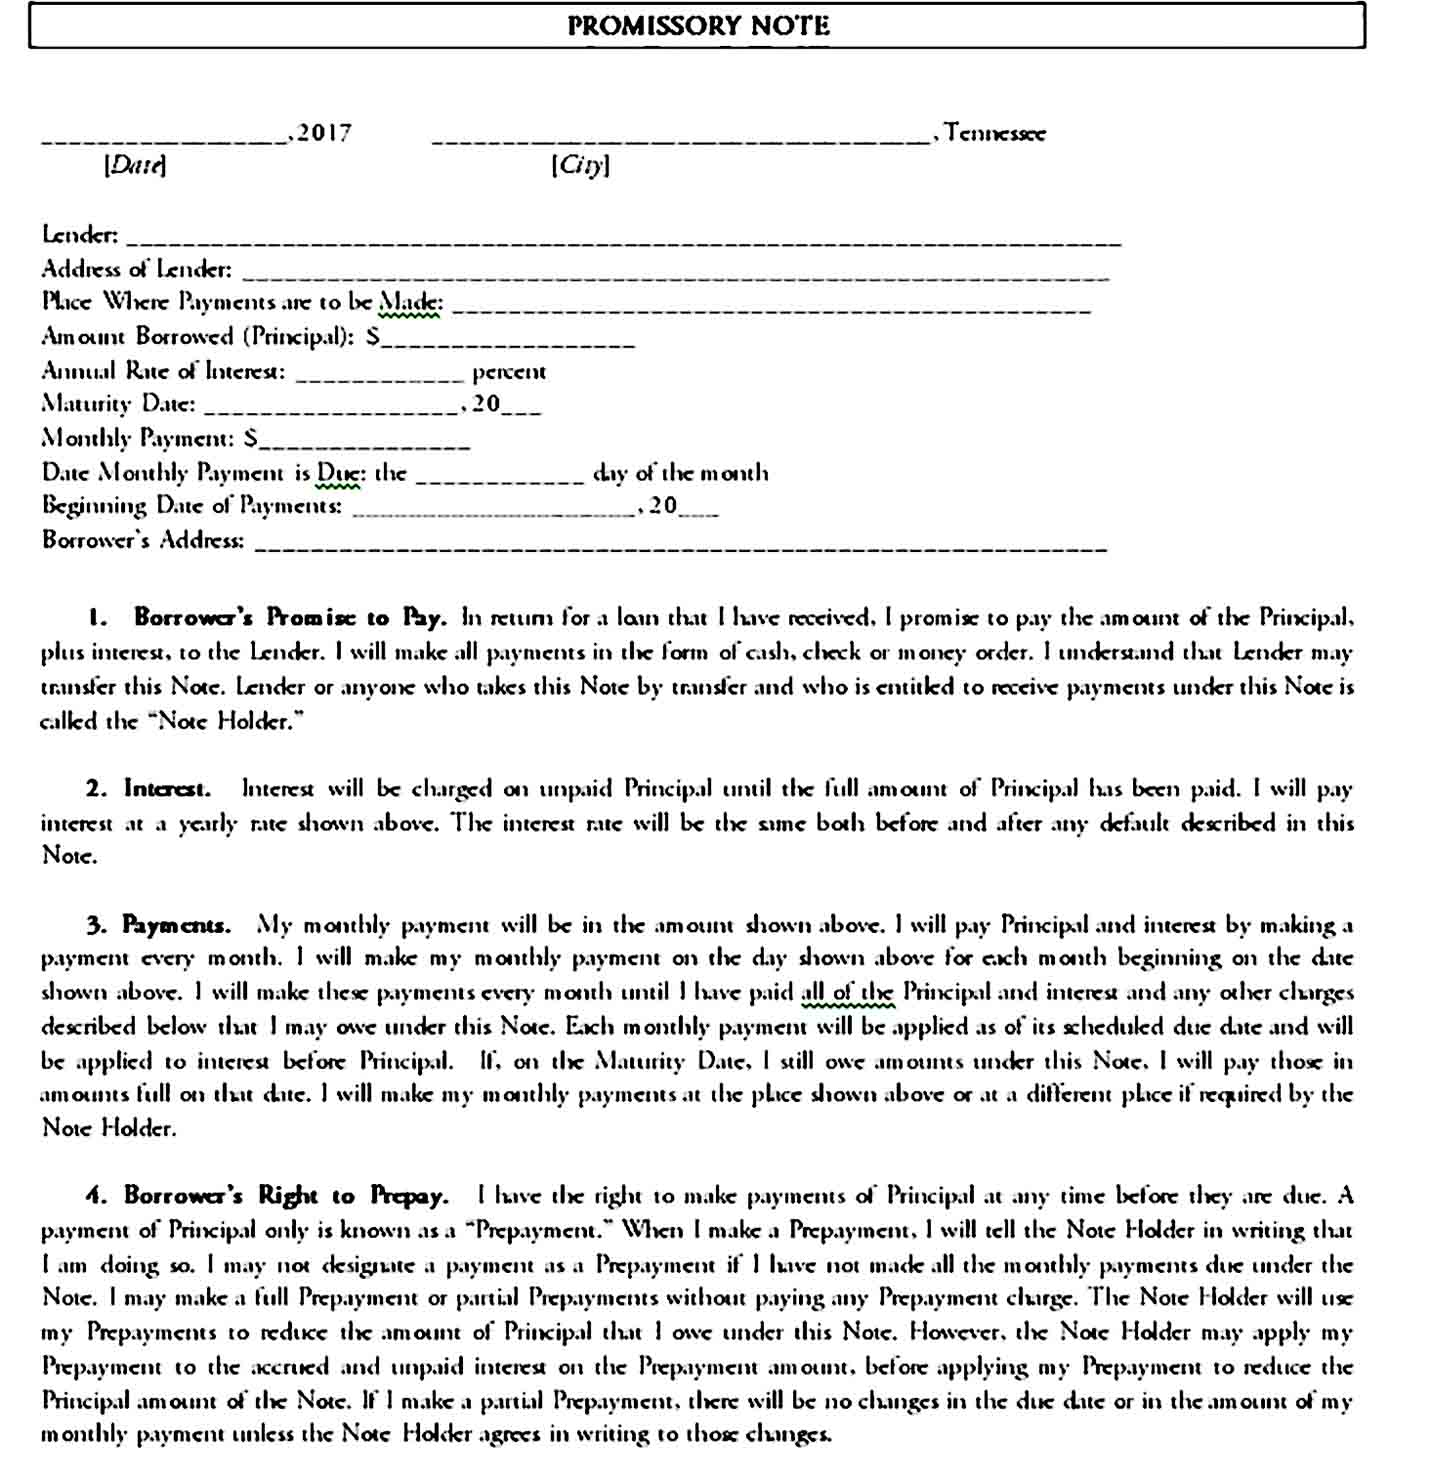 promissory note template 27